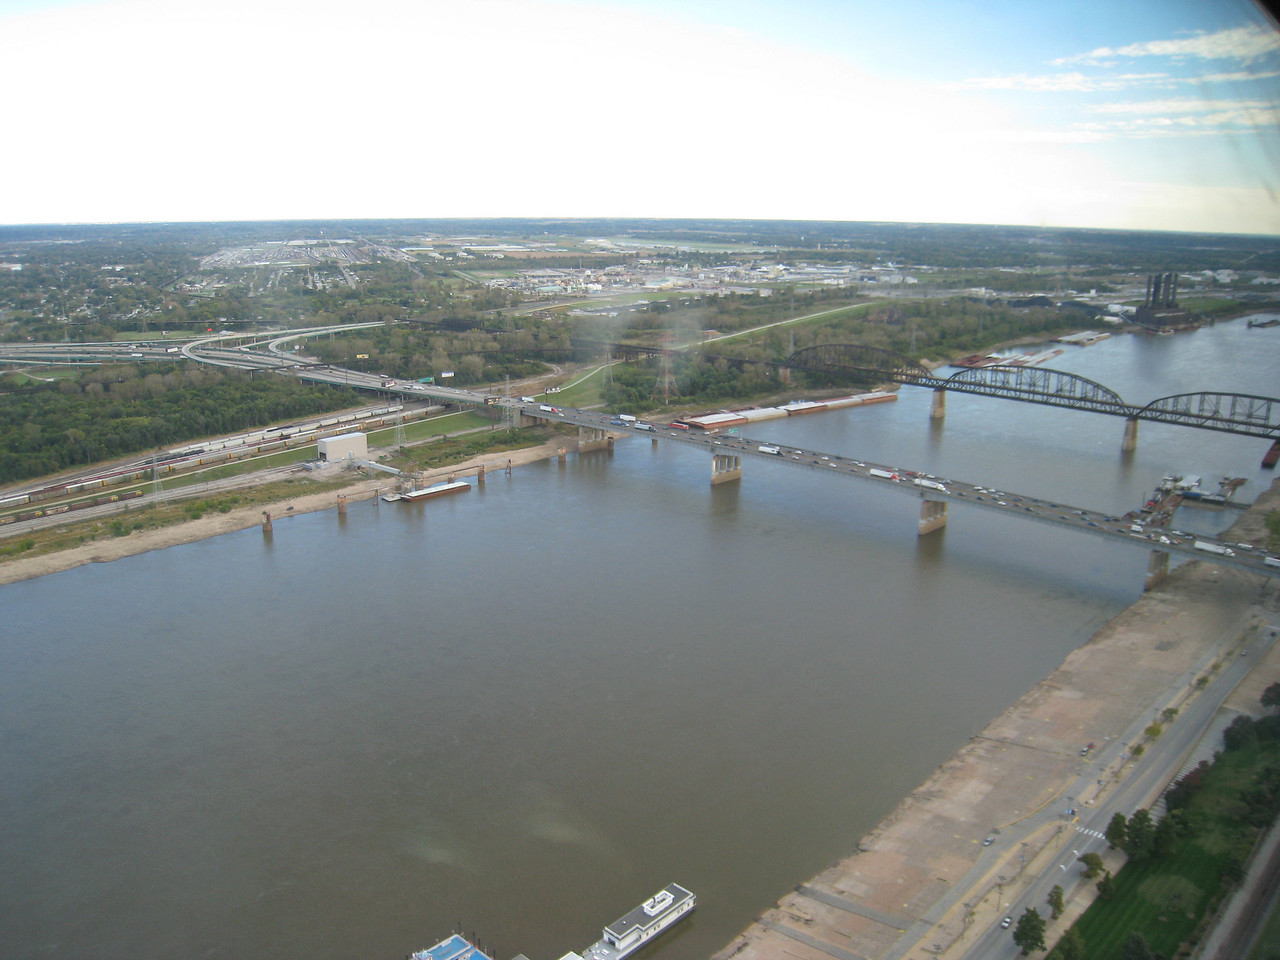 Mississippi River as seen from the top of the arch, looking south.